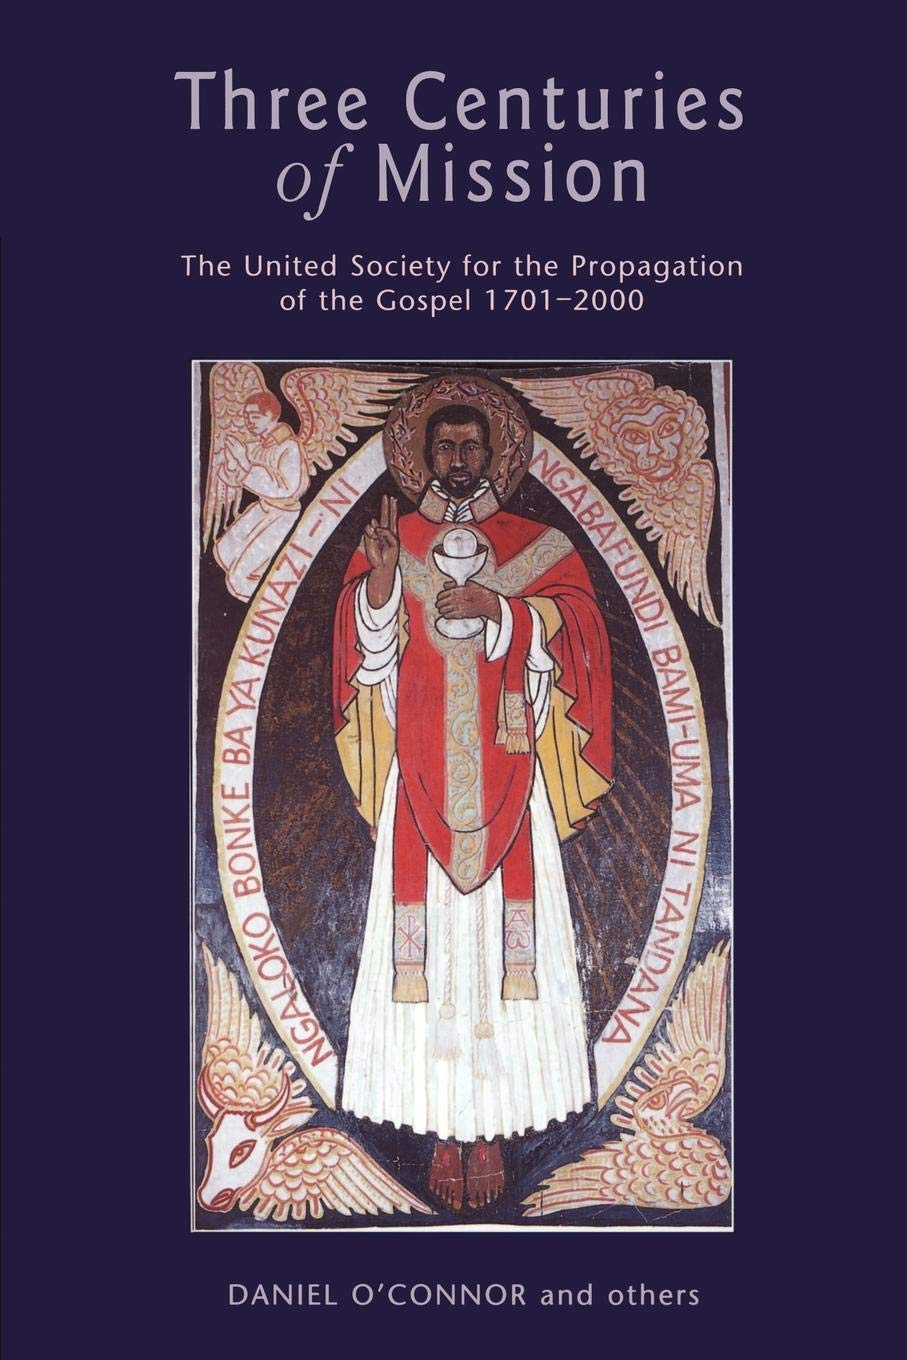 Three Centuries of Mission: The United Society for the Propagation of the Gospel, 1701-2000